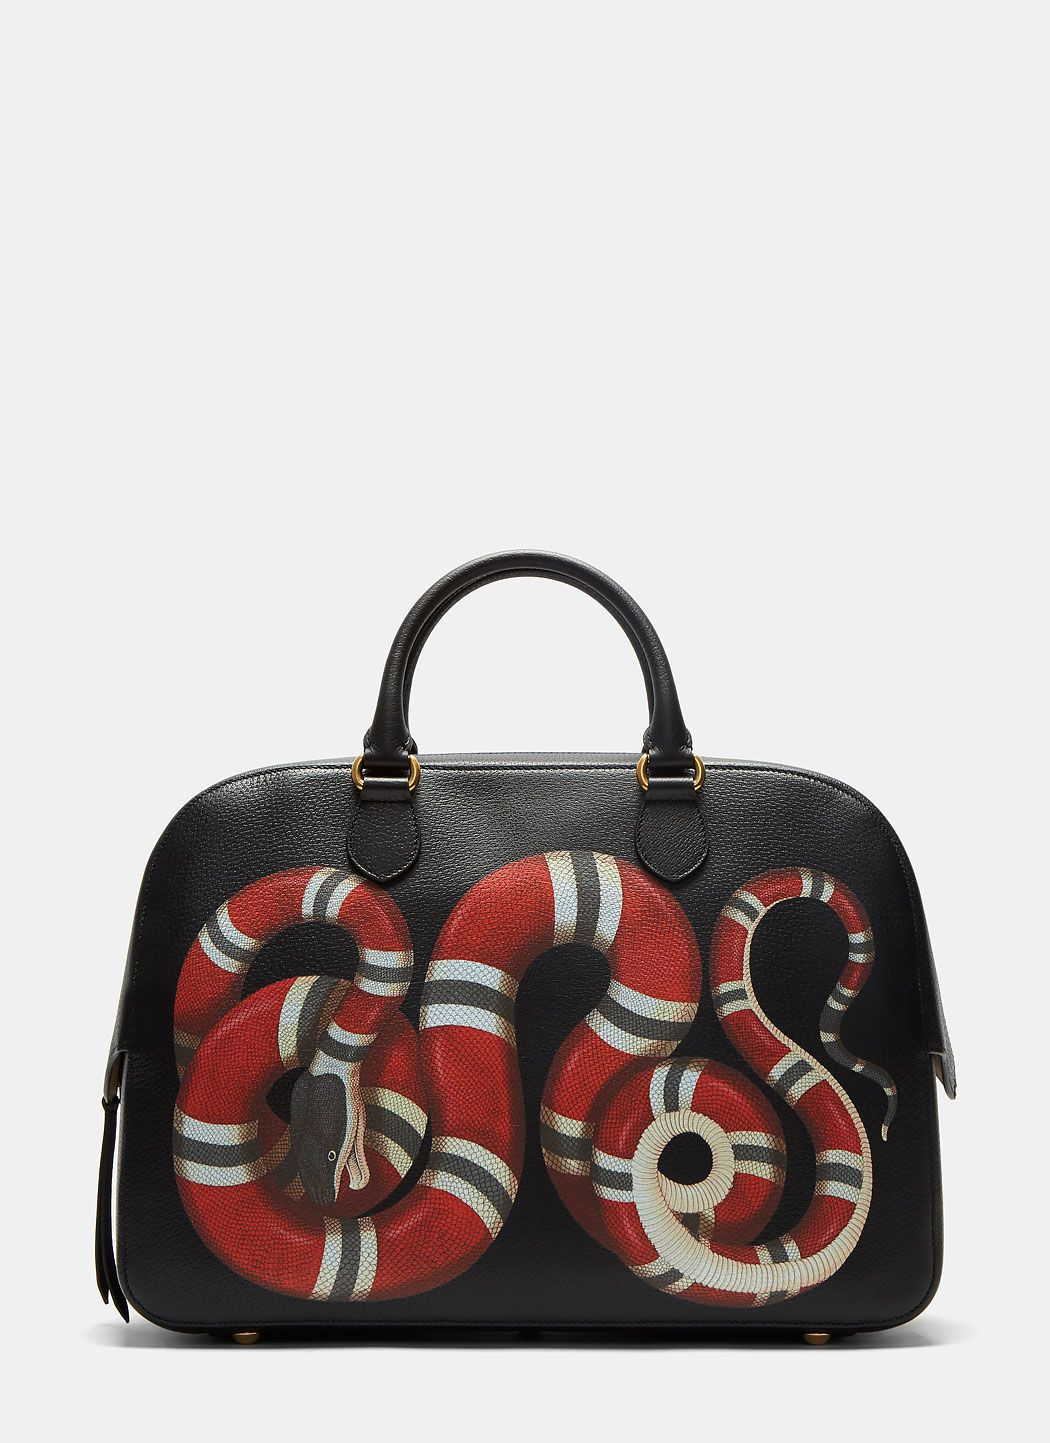 GUCCI Men\u0027s Merveilles Snake Duffle Bag in Black. gucci